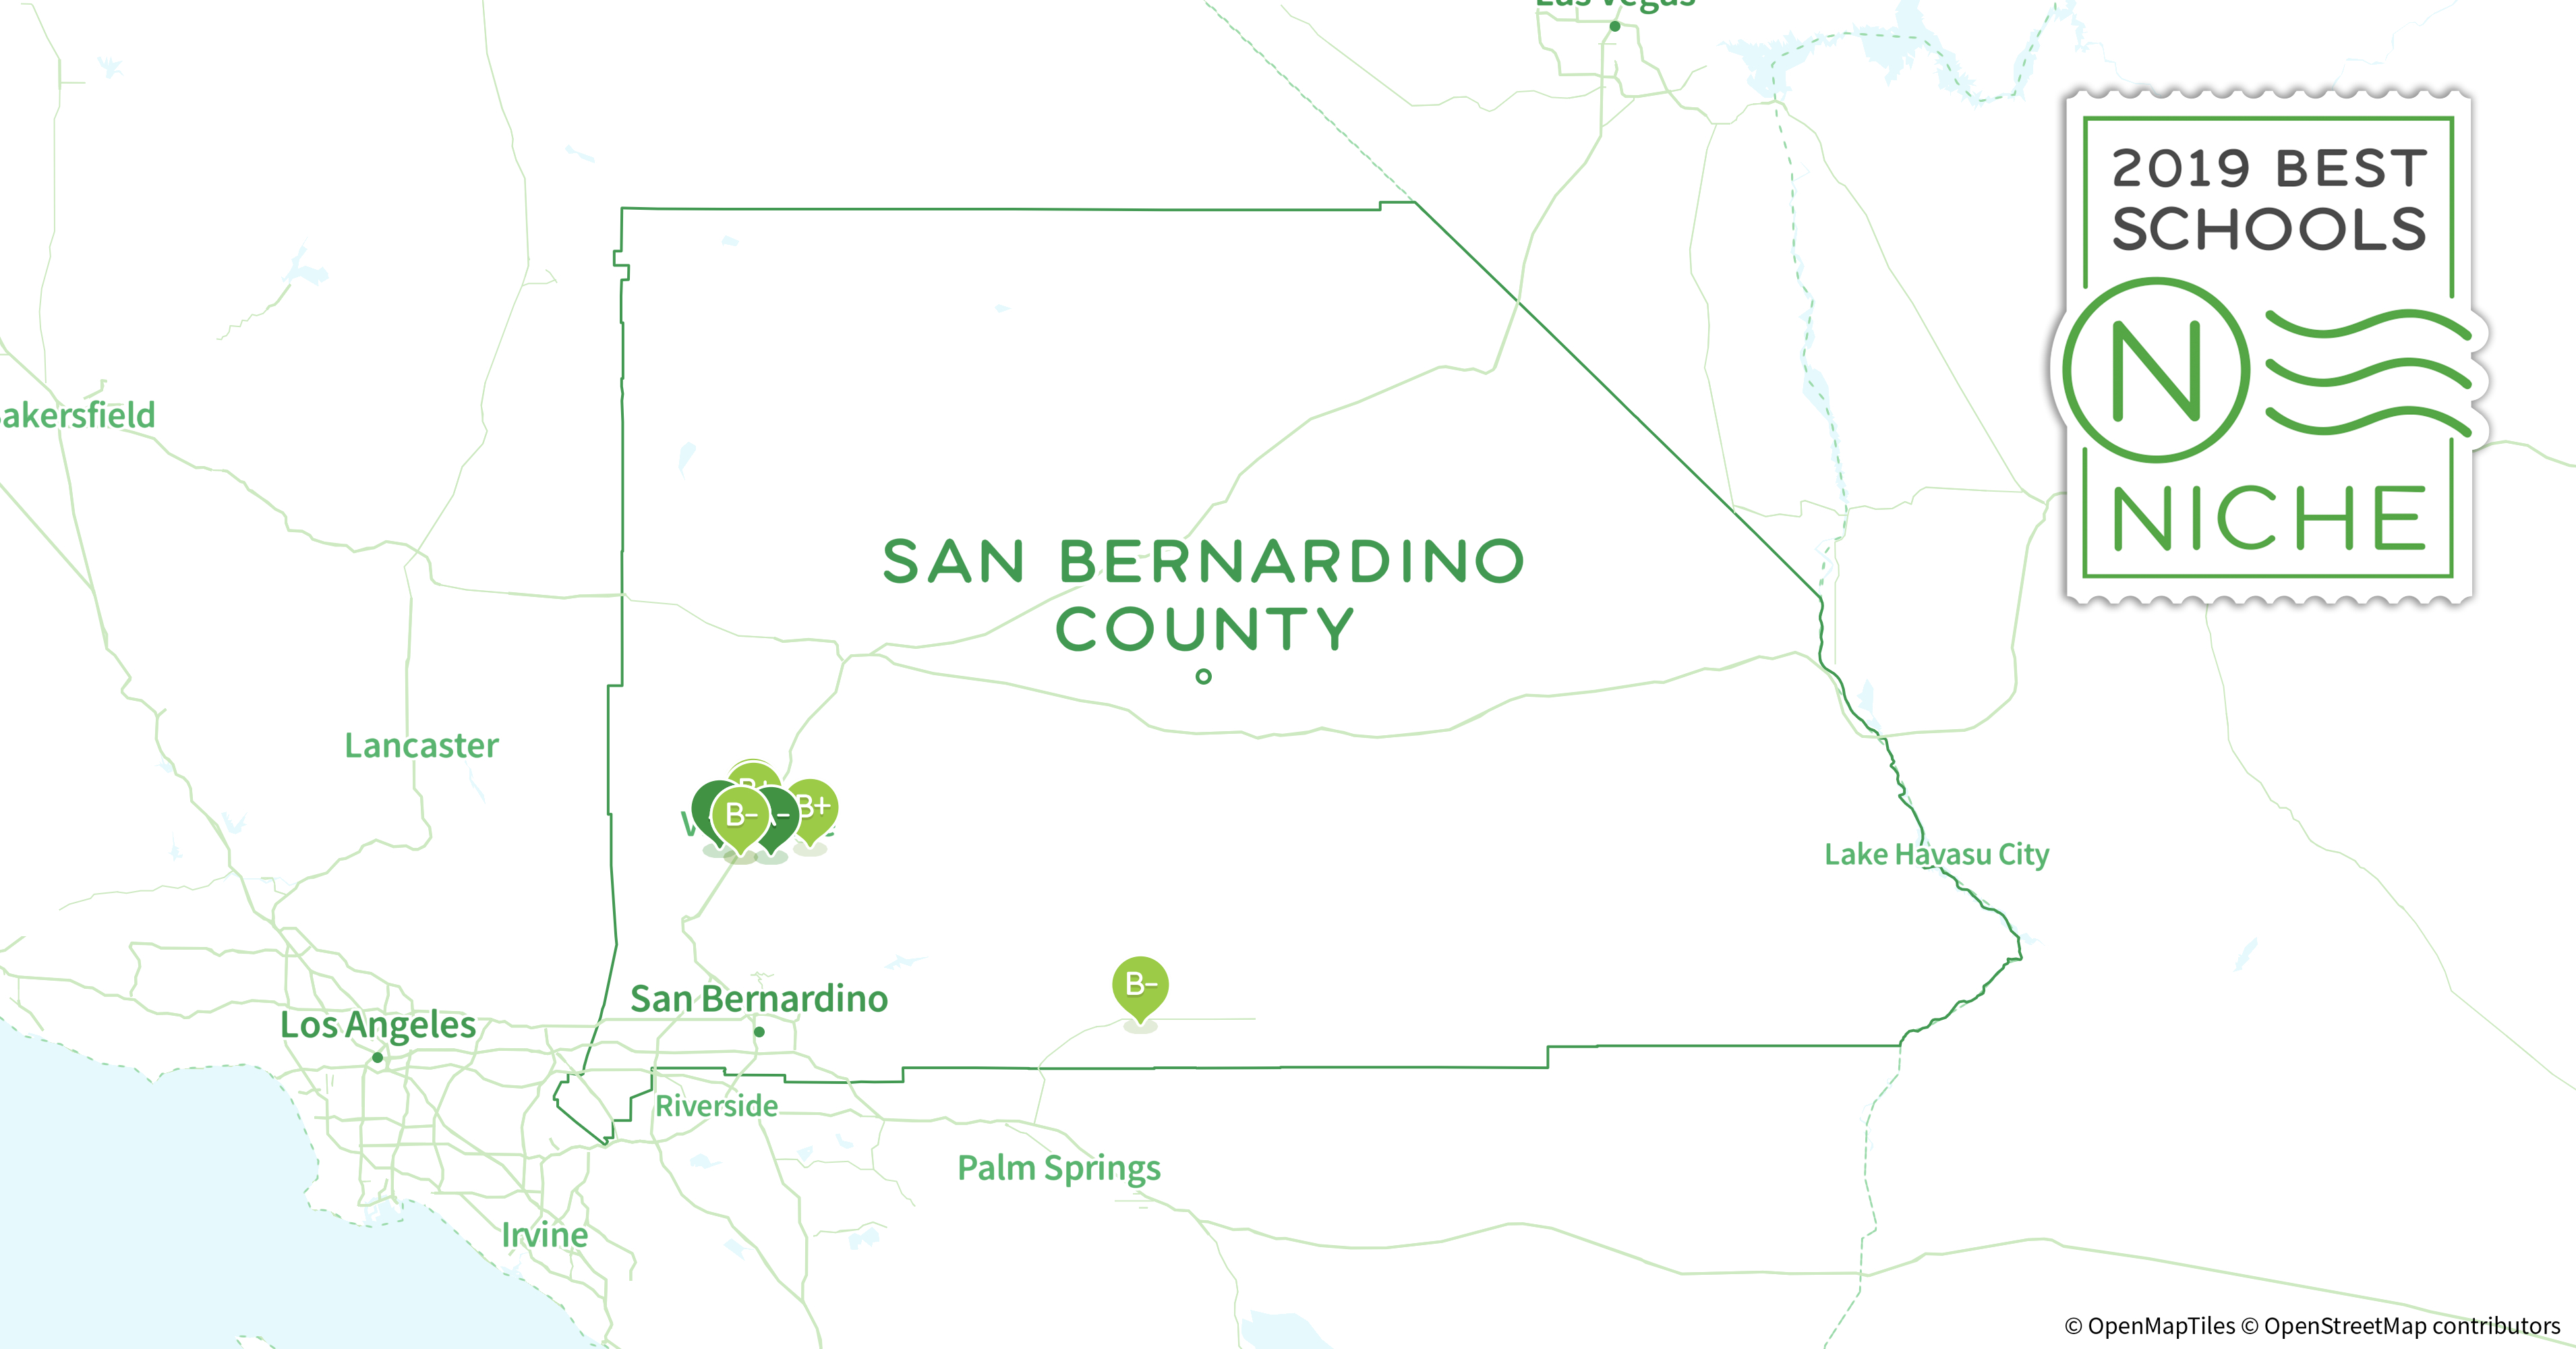 School Districts In San Bernardino County, Ca - Niche - Map Of San Bernardino County California